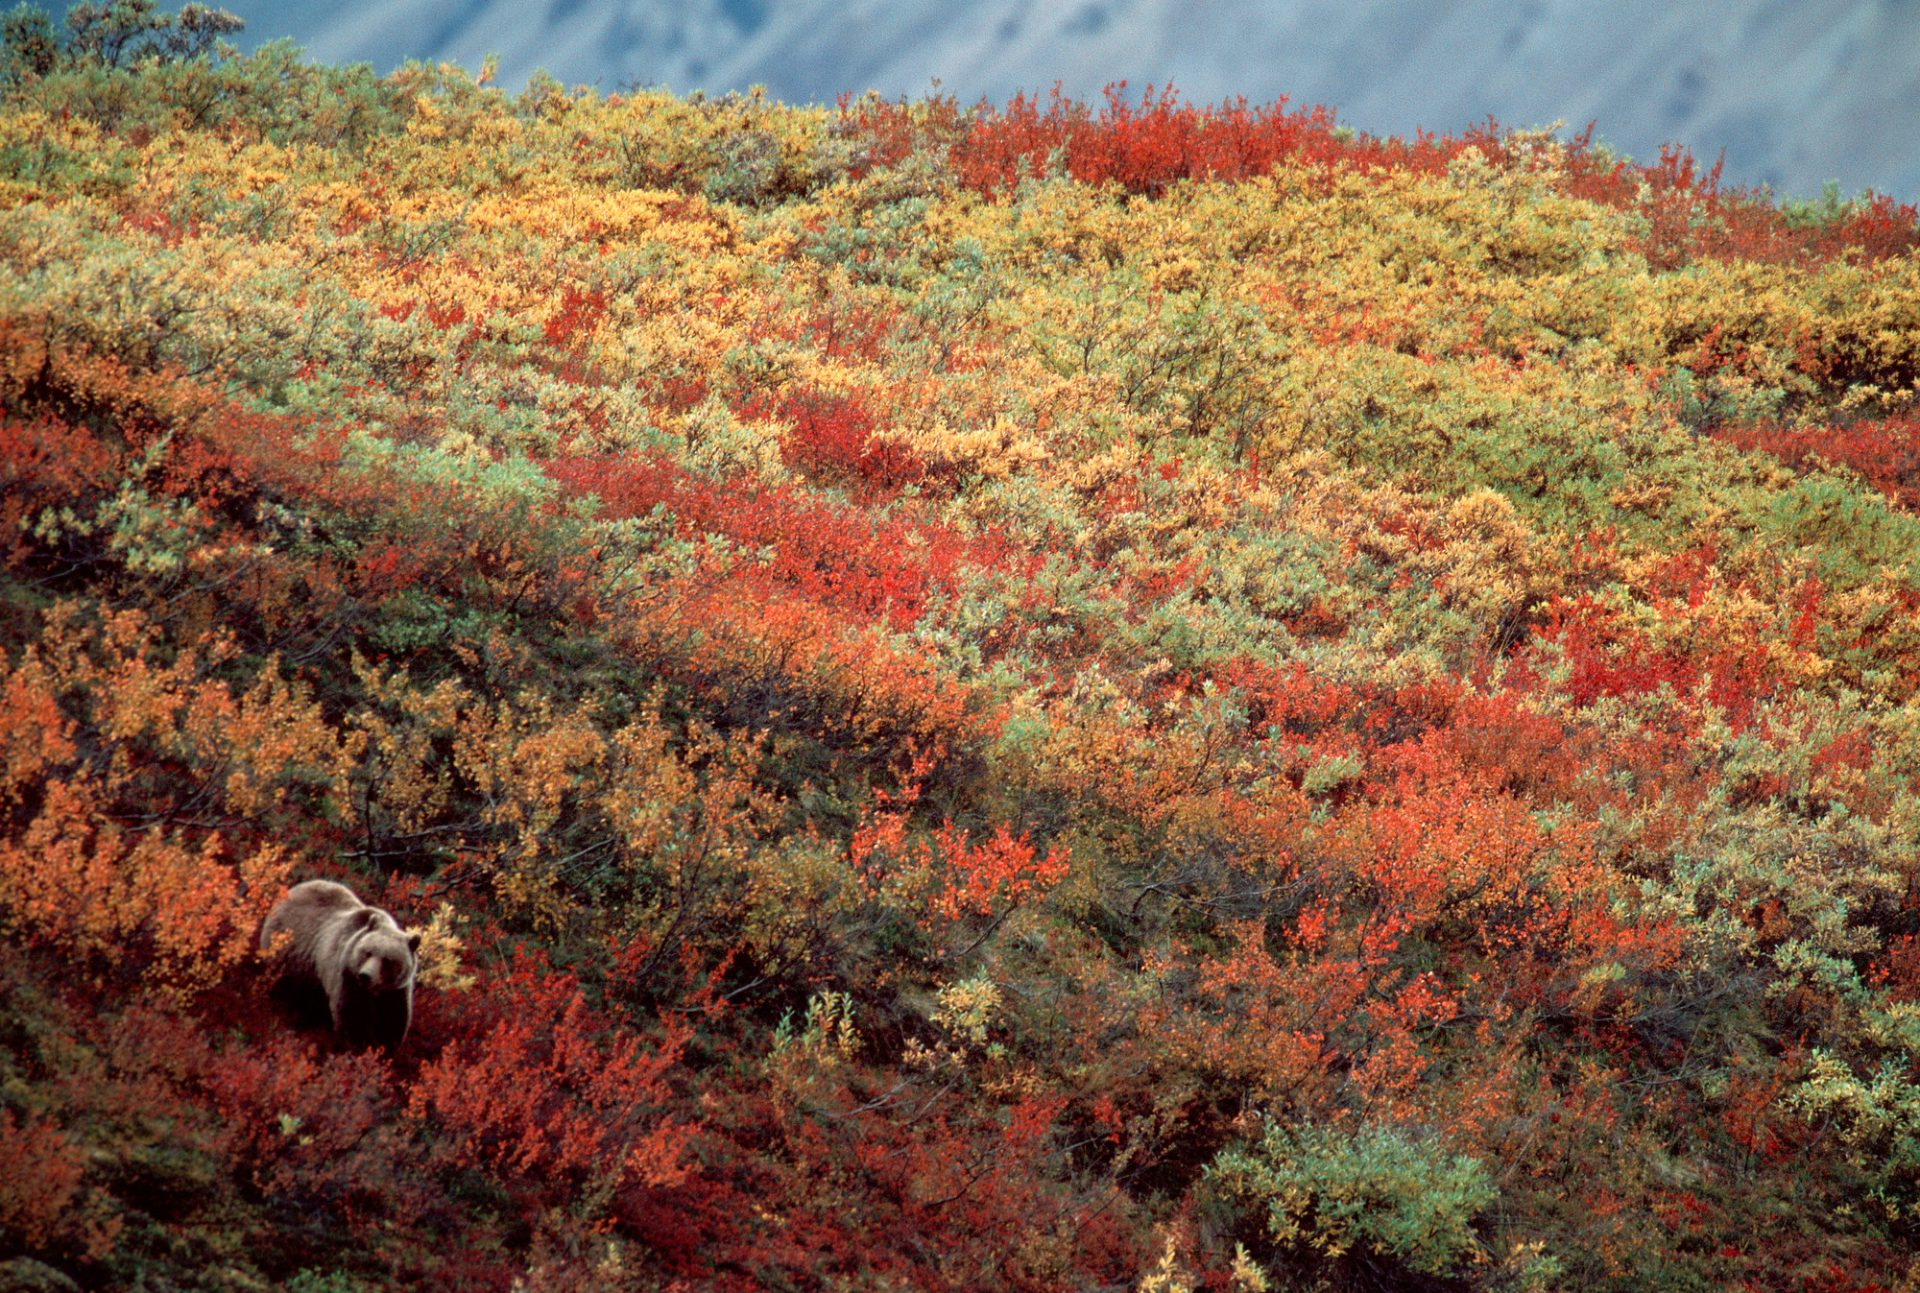 Photo: A grizzly bear in fall color in Denali National Park in Alaska's interior.